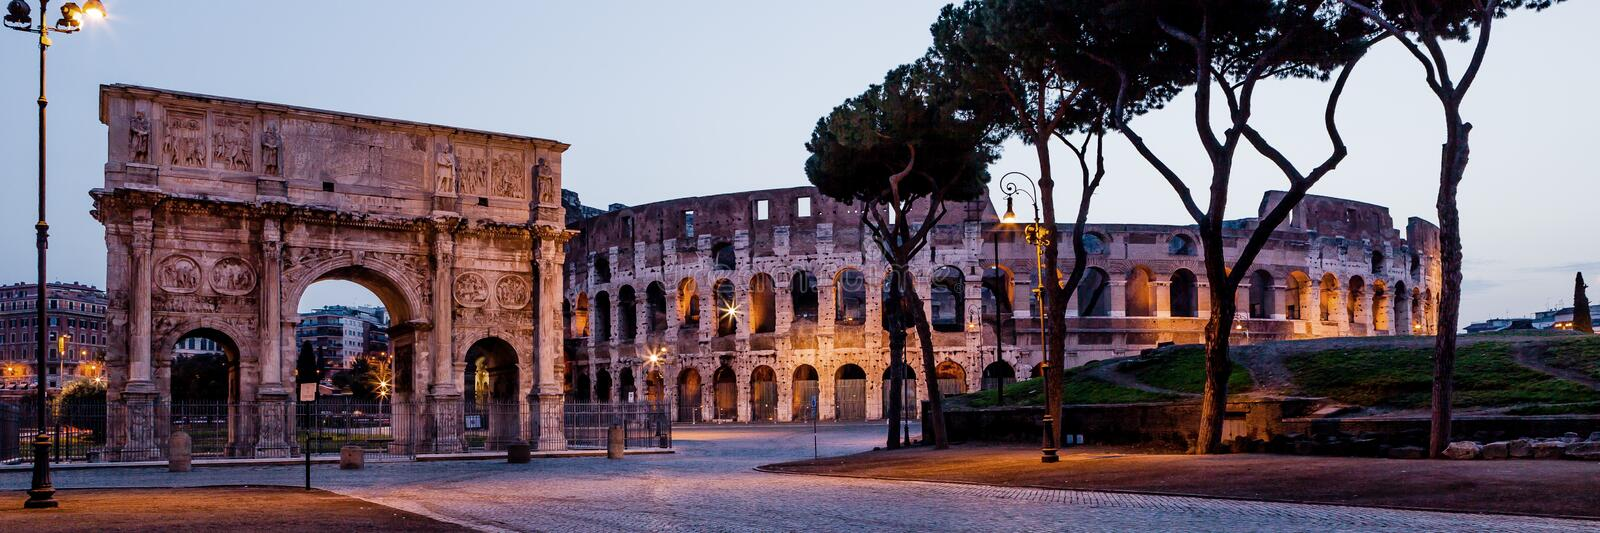 Coliseum and arch in Rome. Italy royalty free stock photo